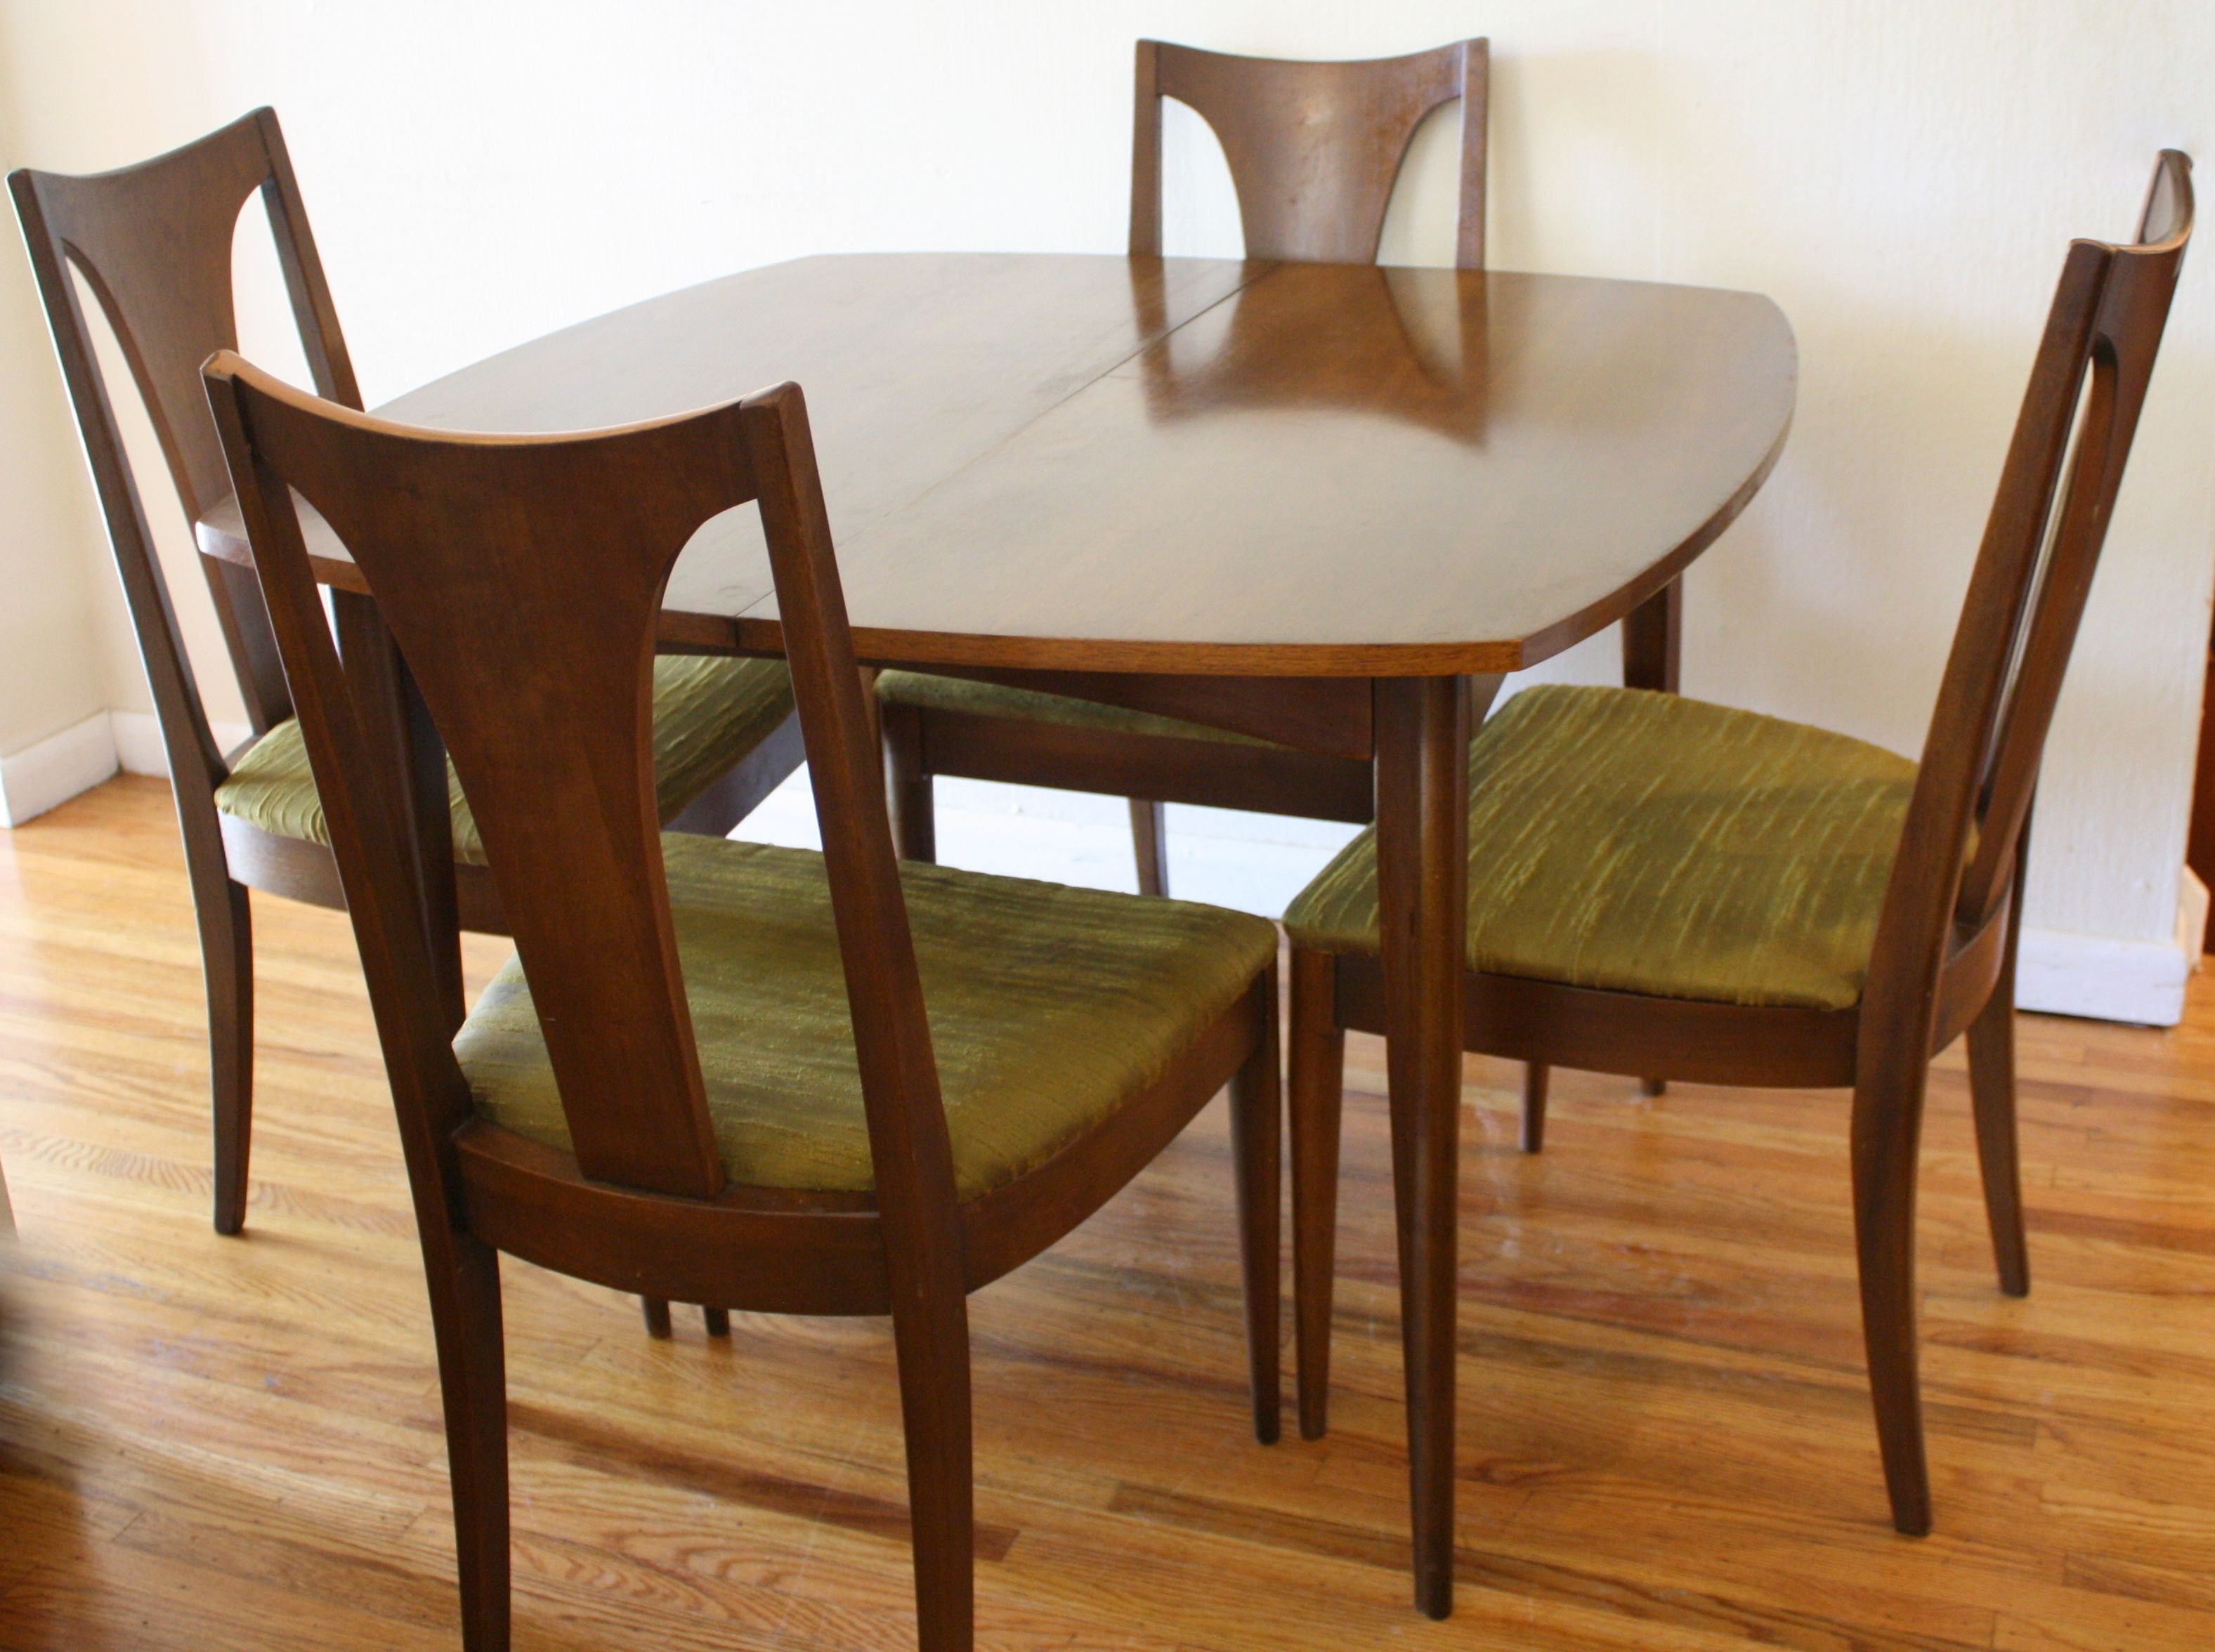 Broyhill Dining Room Chairs Mid Century  Google Search Amazing Dining Room Chairs Mid Century Modern Decorating Design